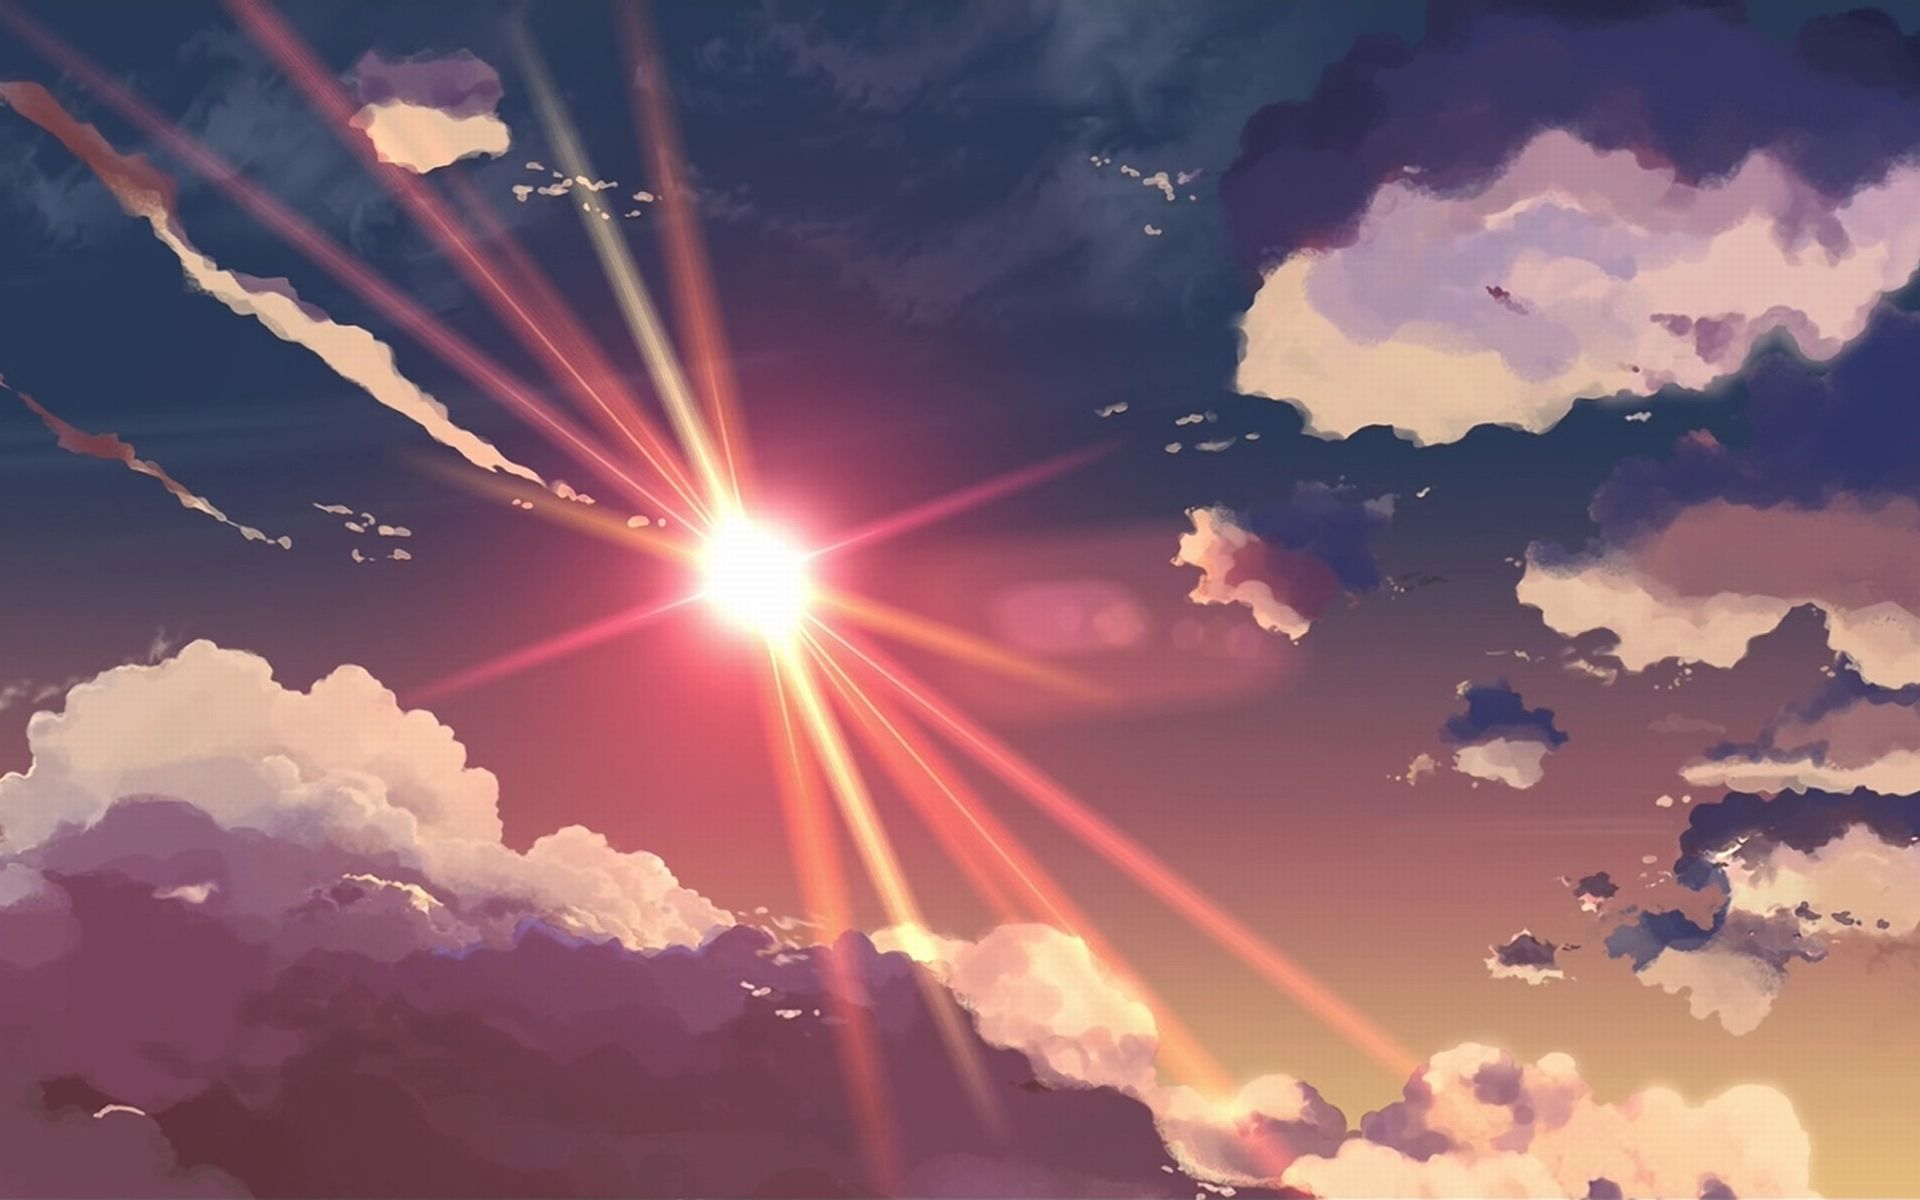 Anime Sunshine Wallpaper 1920x1200 Id 22106 Anime Scenery Scenery Wallpaper Anime Scenery Wallpaper